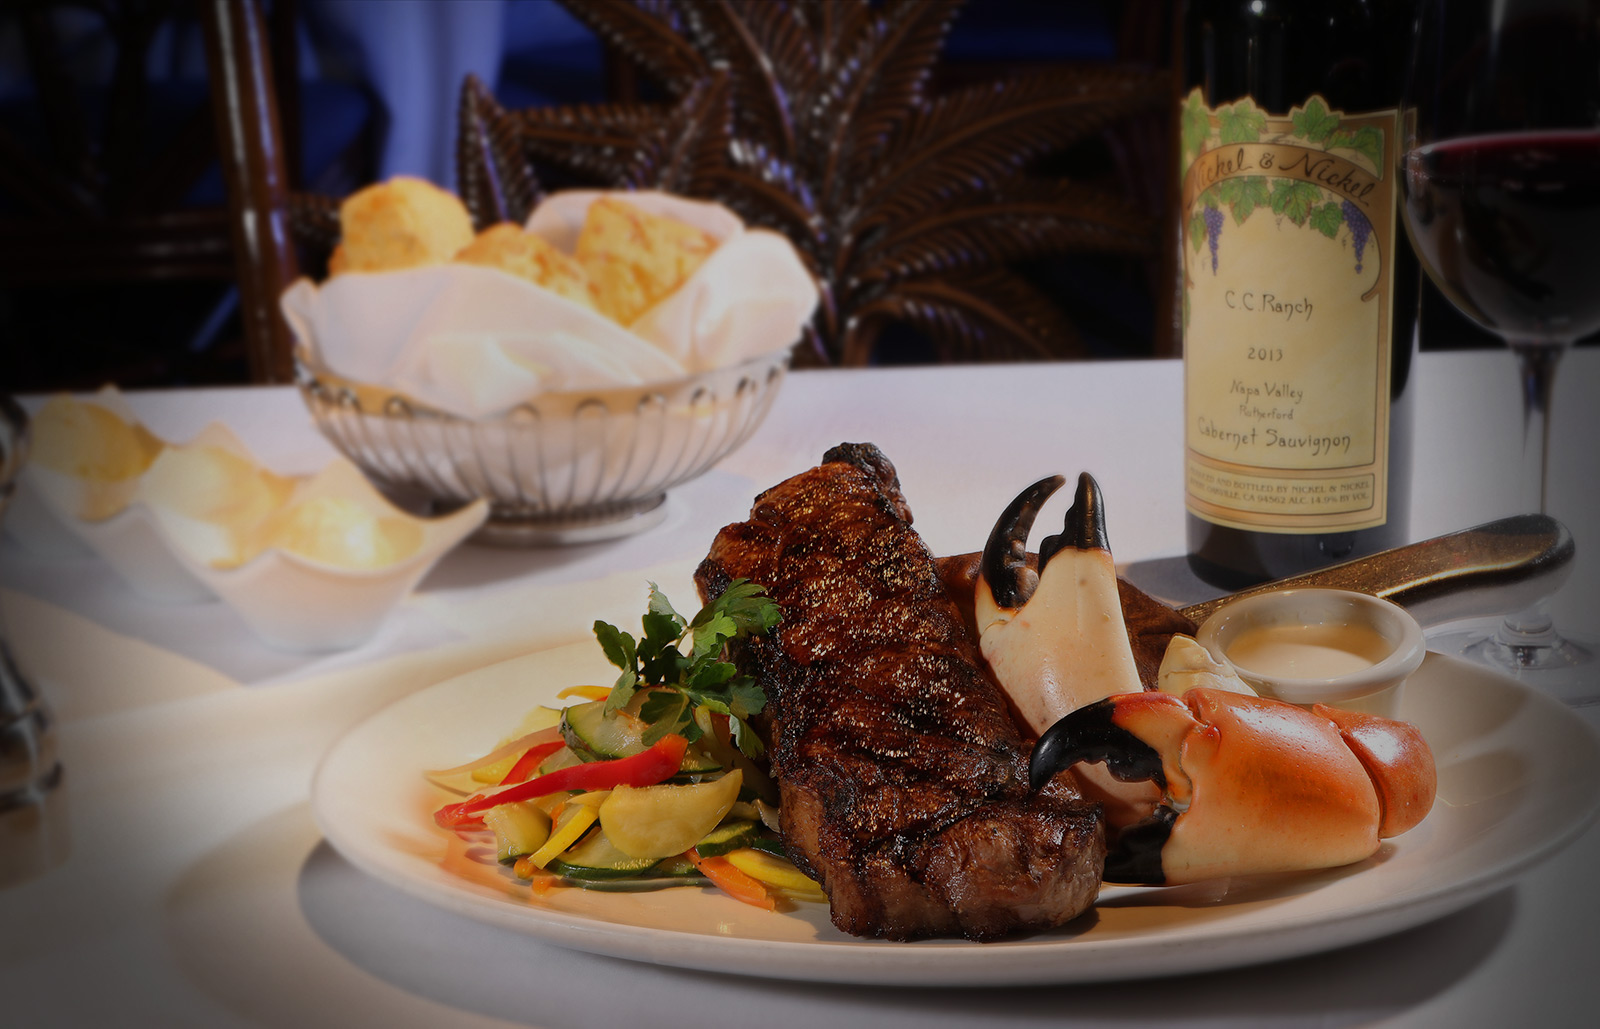 Best Affordable Steak Seafood And Stone Crab Restaurant In Naples Florida Great Wine Family Friendly